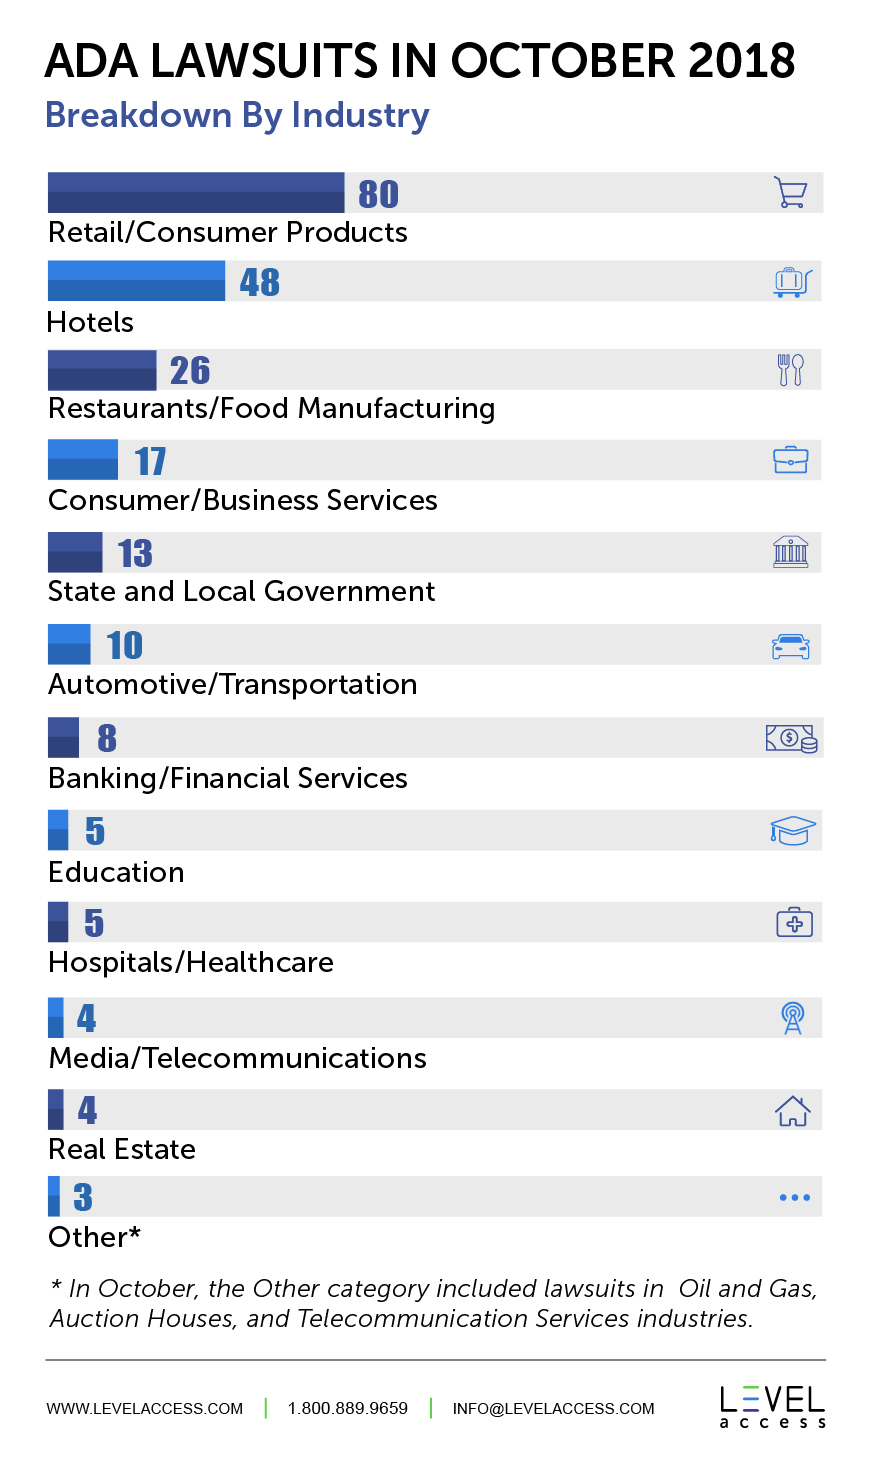 ADA Lawsuits in October 2018 Breakdown By Industry: Retail/Consumer Products 80, Hotels 48, Restaurants/Food Manufacturing 26, Consumer/Business Services 17, State and Local Government 13, Automotive/Transportation 10, Banking/Financial Services 8, Education 5, Hospitals/Healthcare 5, Media/Telecommunications 4, Real Estate 4, Other 3. In October, the Other category included lawsuits in Oil and Gas, Auction Houses, and Telecommunication Services industries.